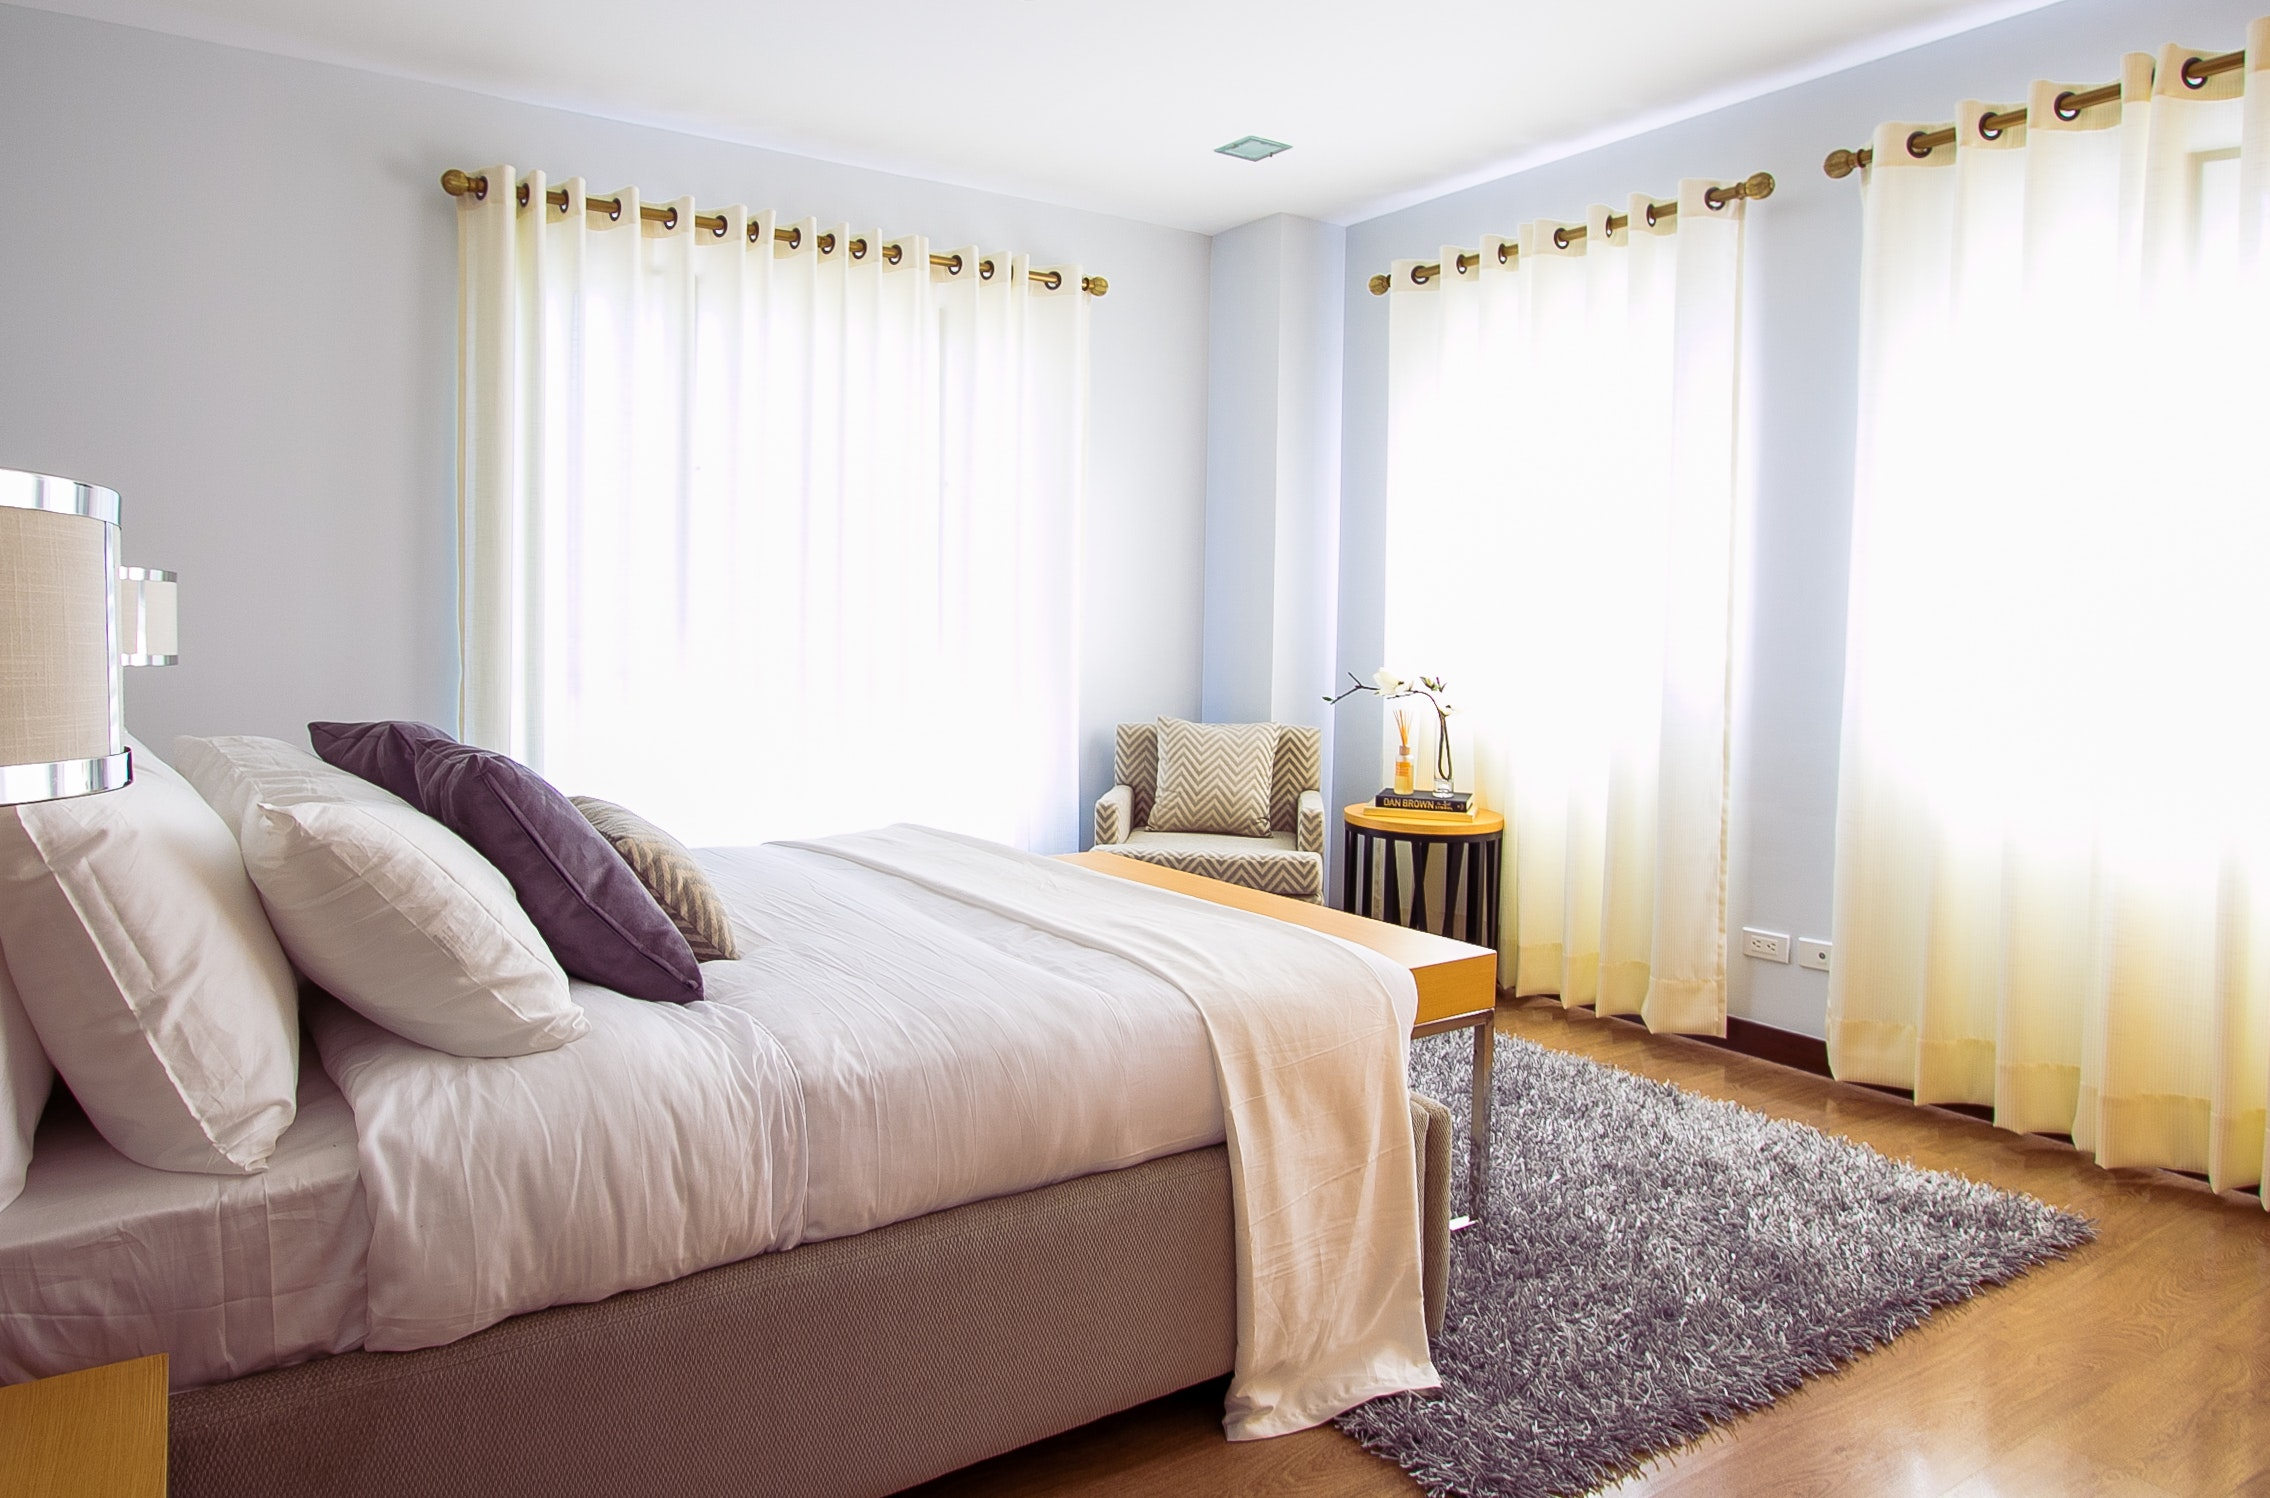 Master Bedroom Decorating - Curtains